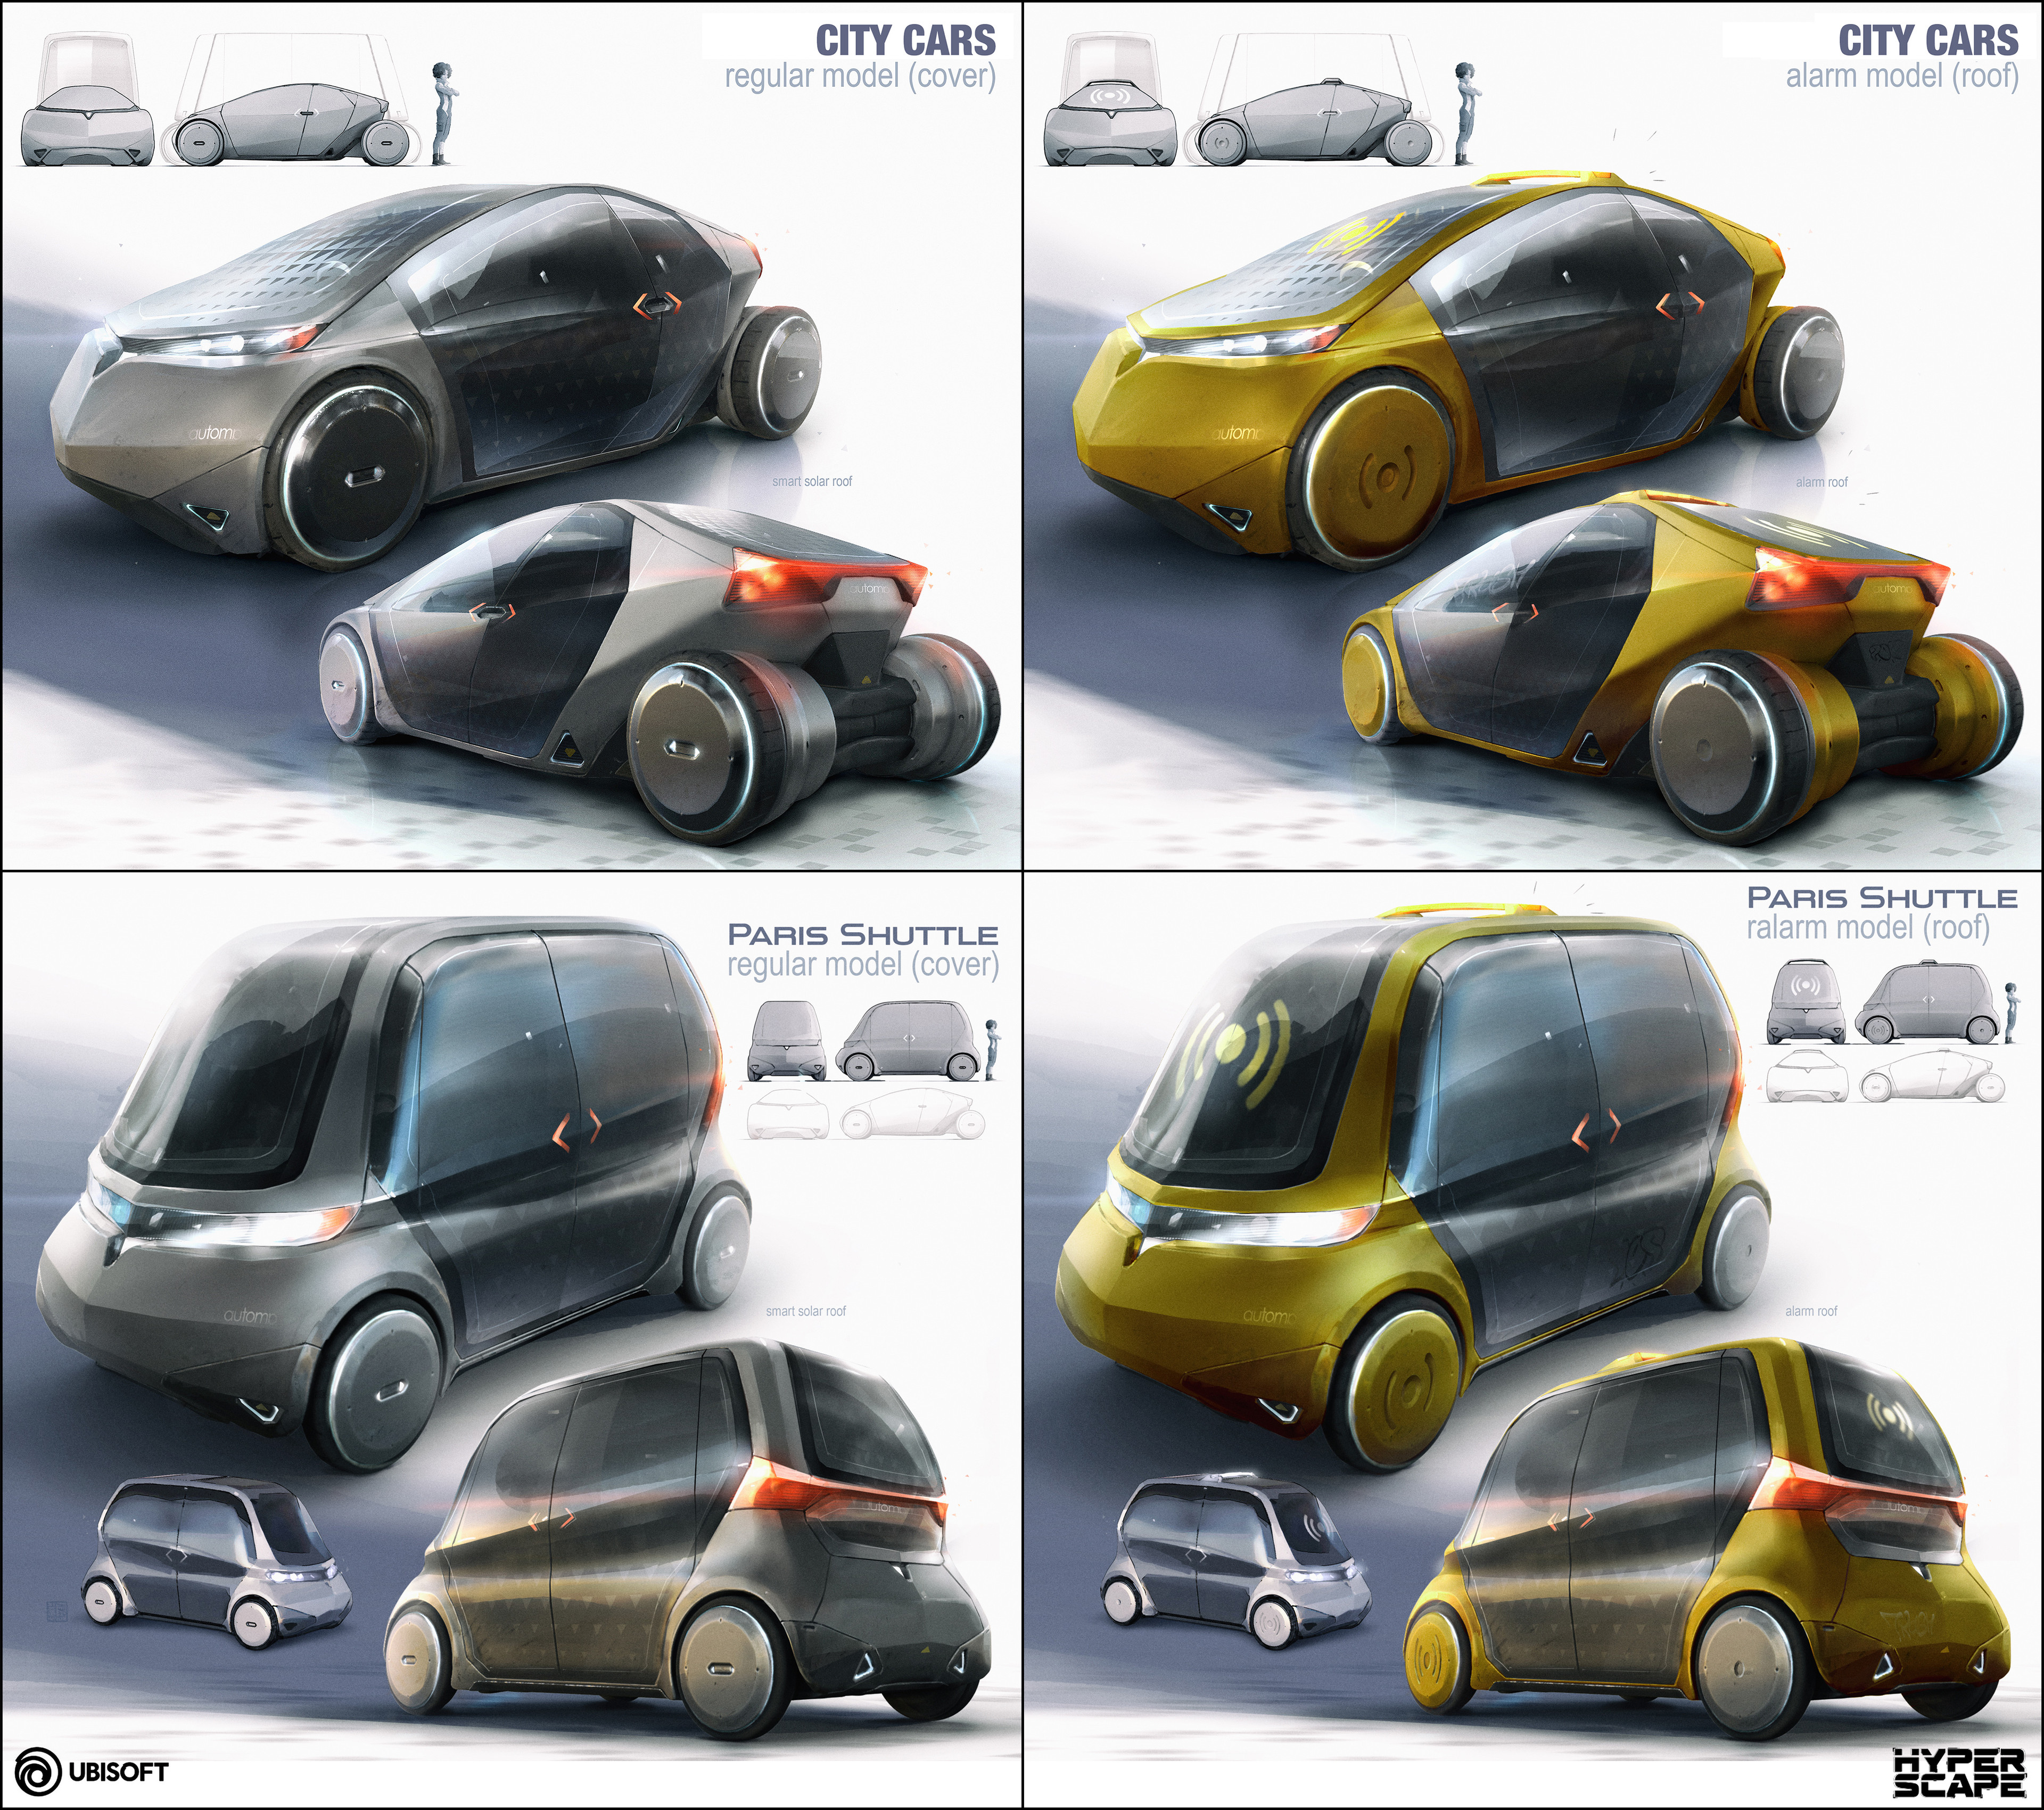 Self-driving, personal transports...